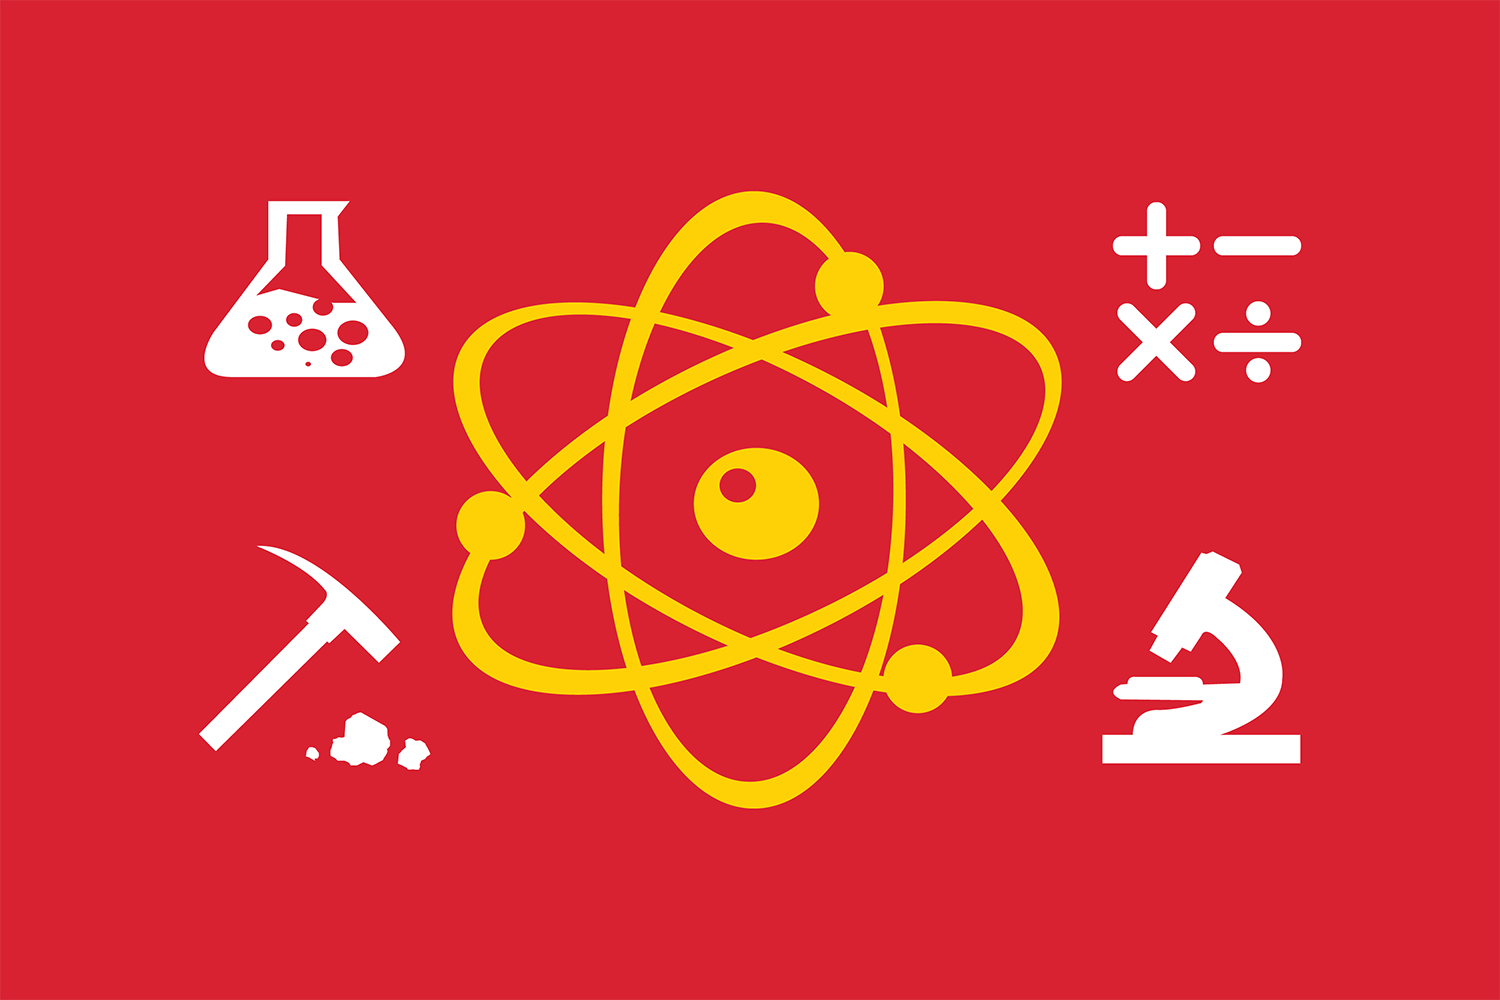 science day logo elements